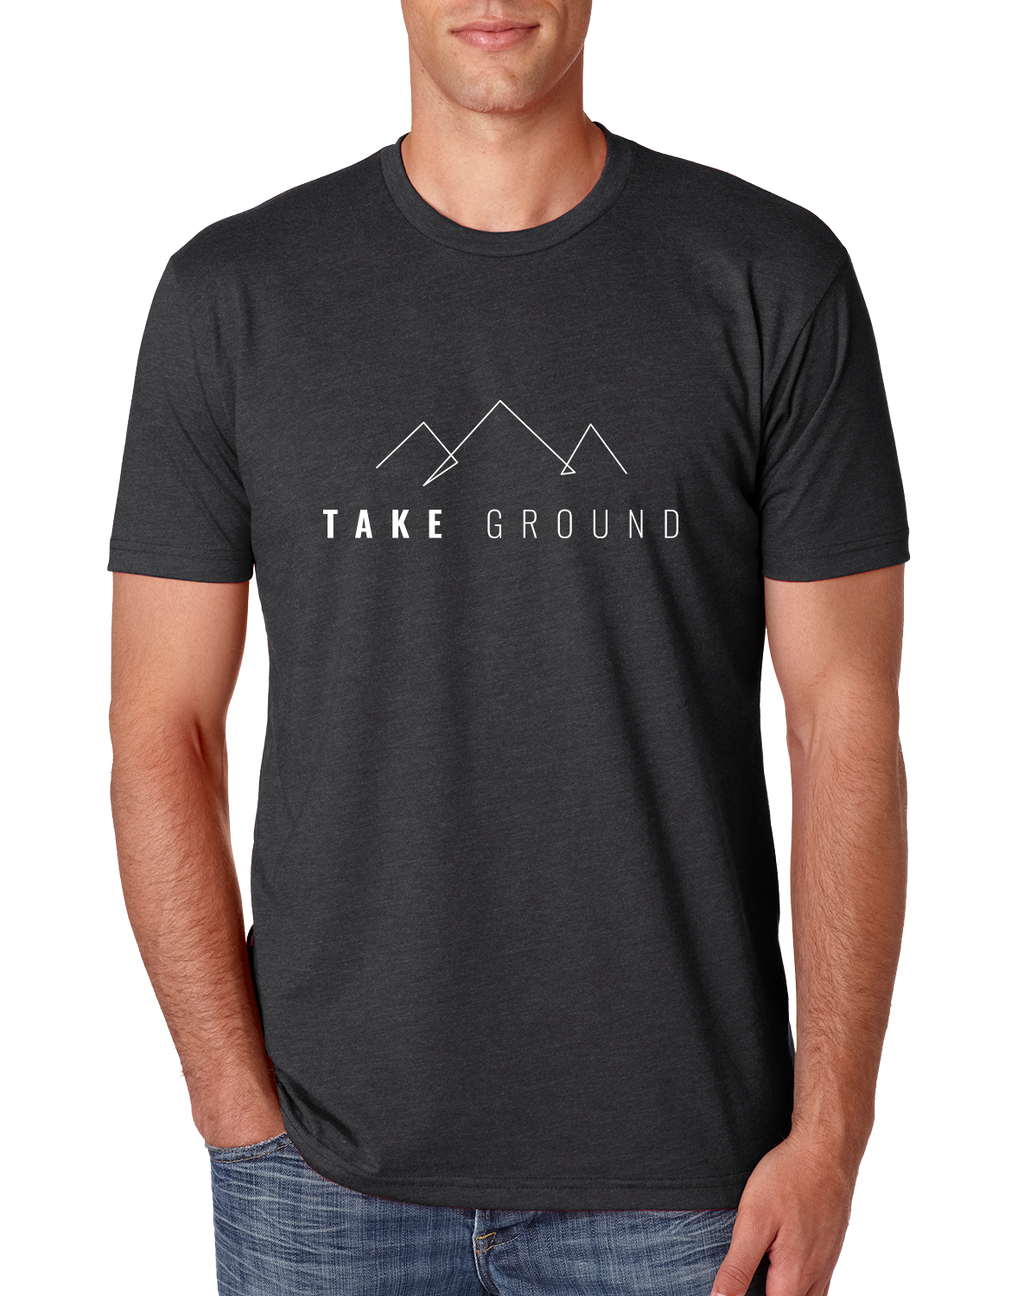 Take Ground T-Shirt